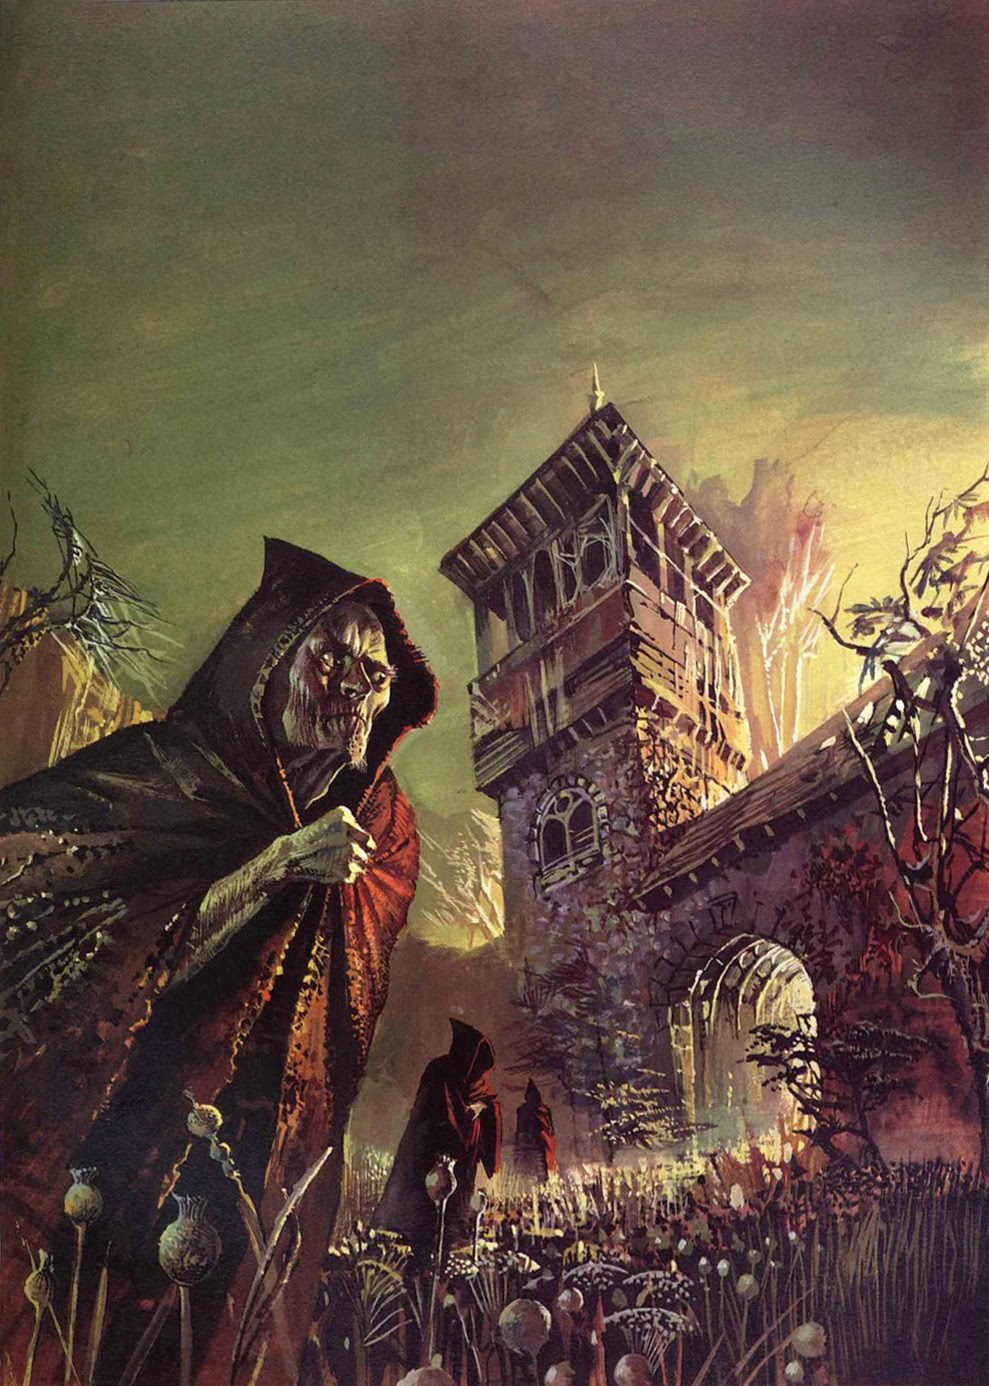 Bruce Pennington - H. P. Lovecraft & Others, Tales Of The Cthulhu Mythos Vol. 2, 1974